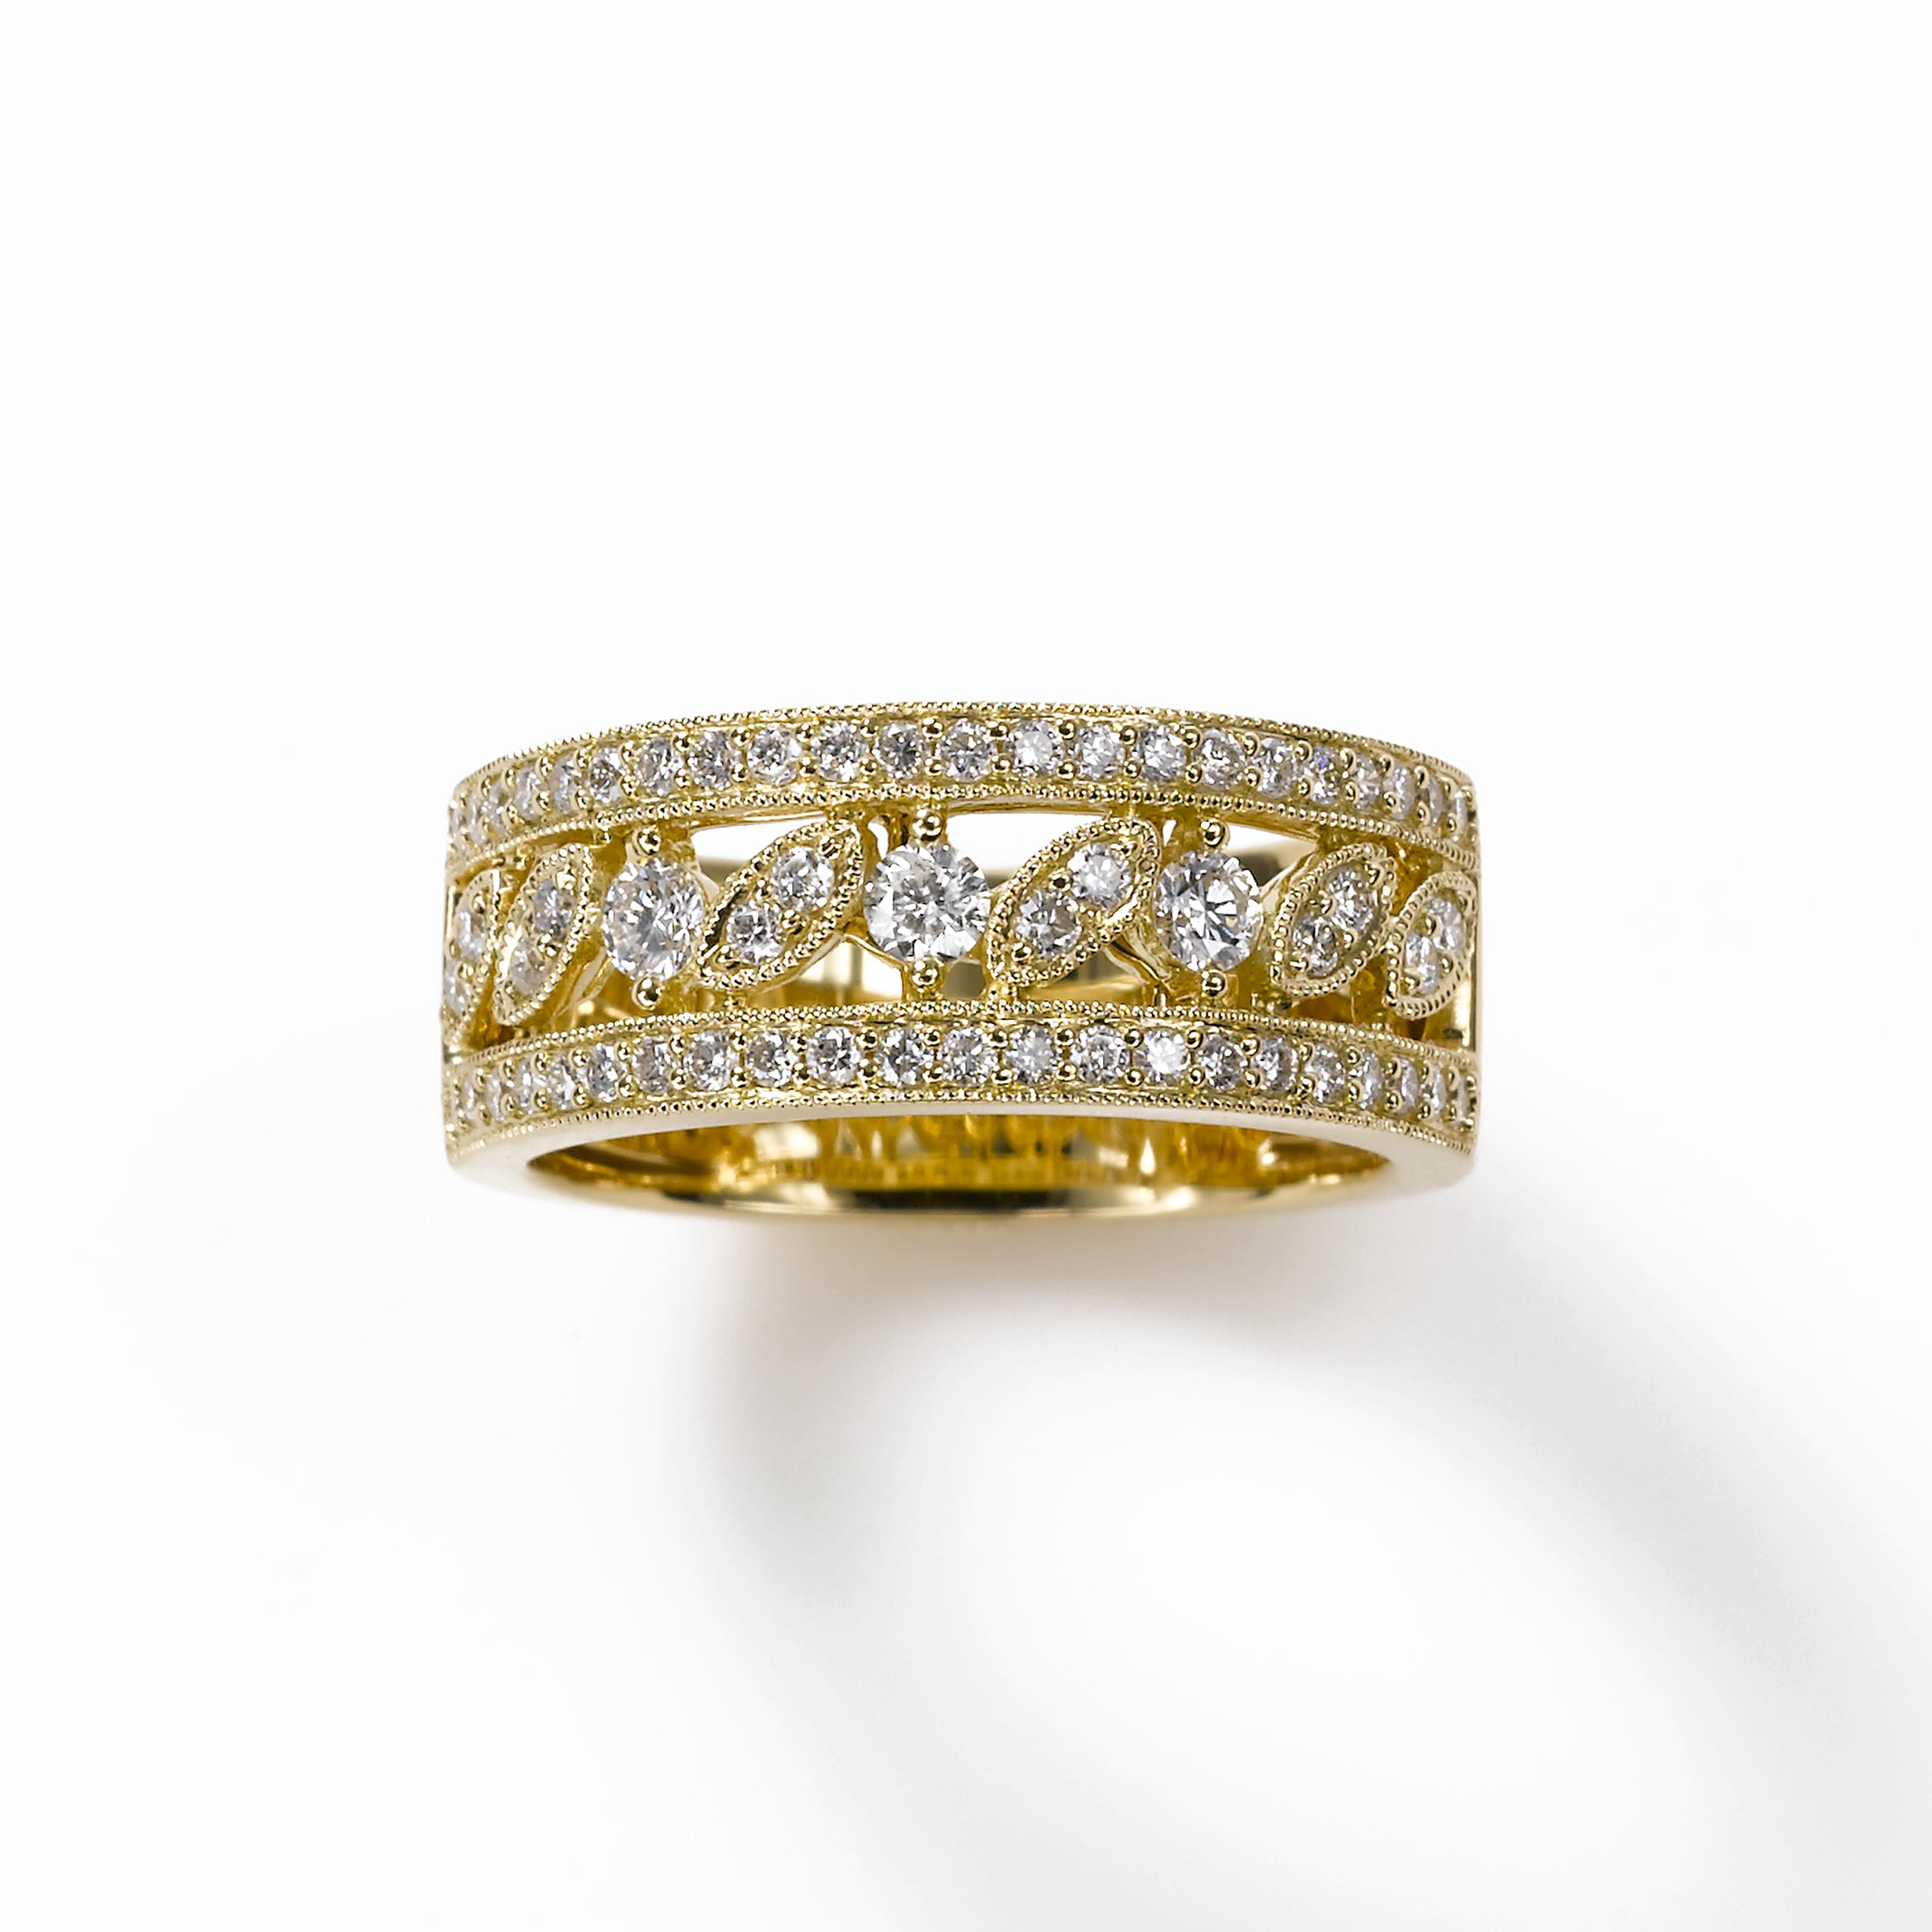 Vintage Style Band Size 6, .70 Carat, 18K Yellow Gold